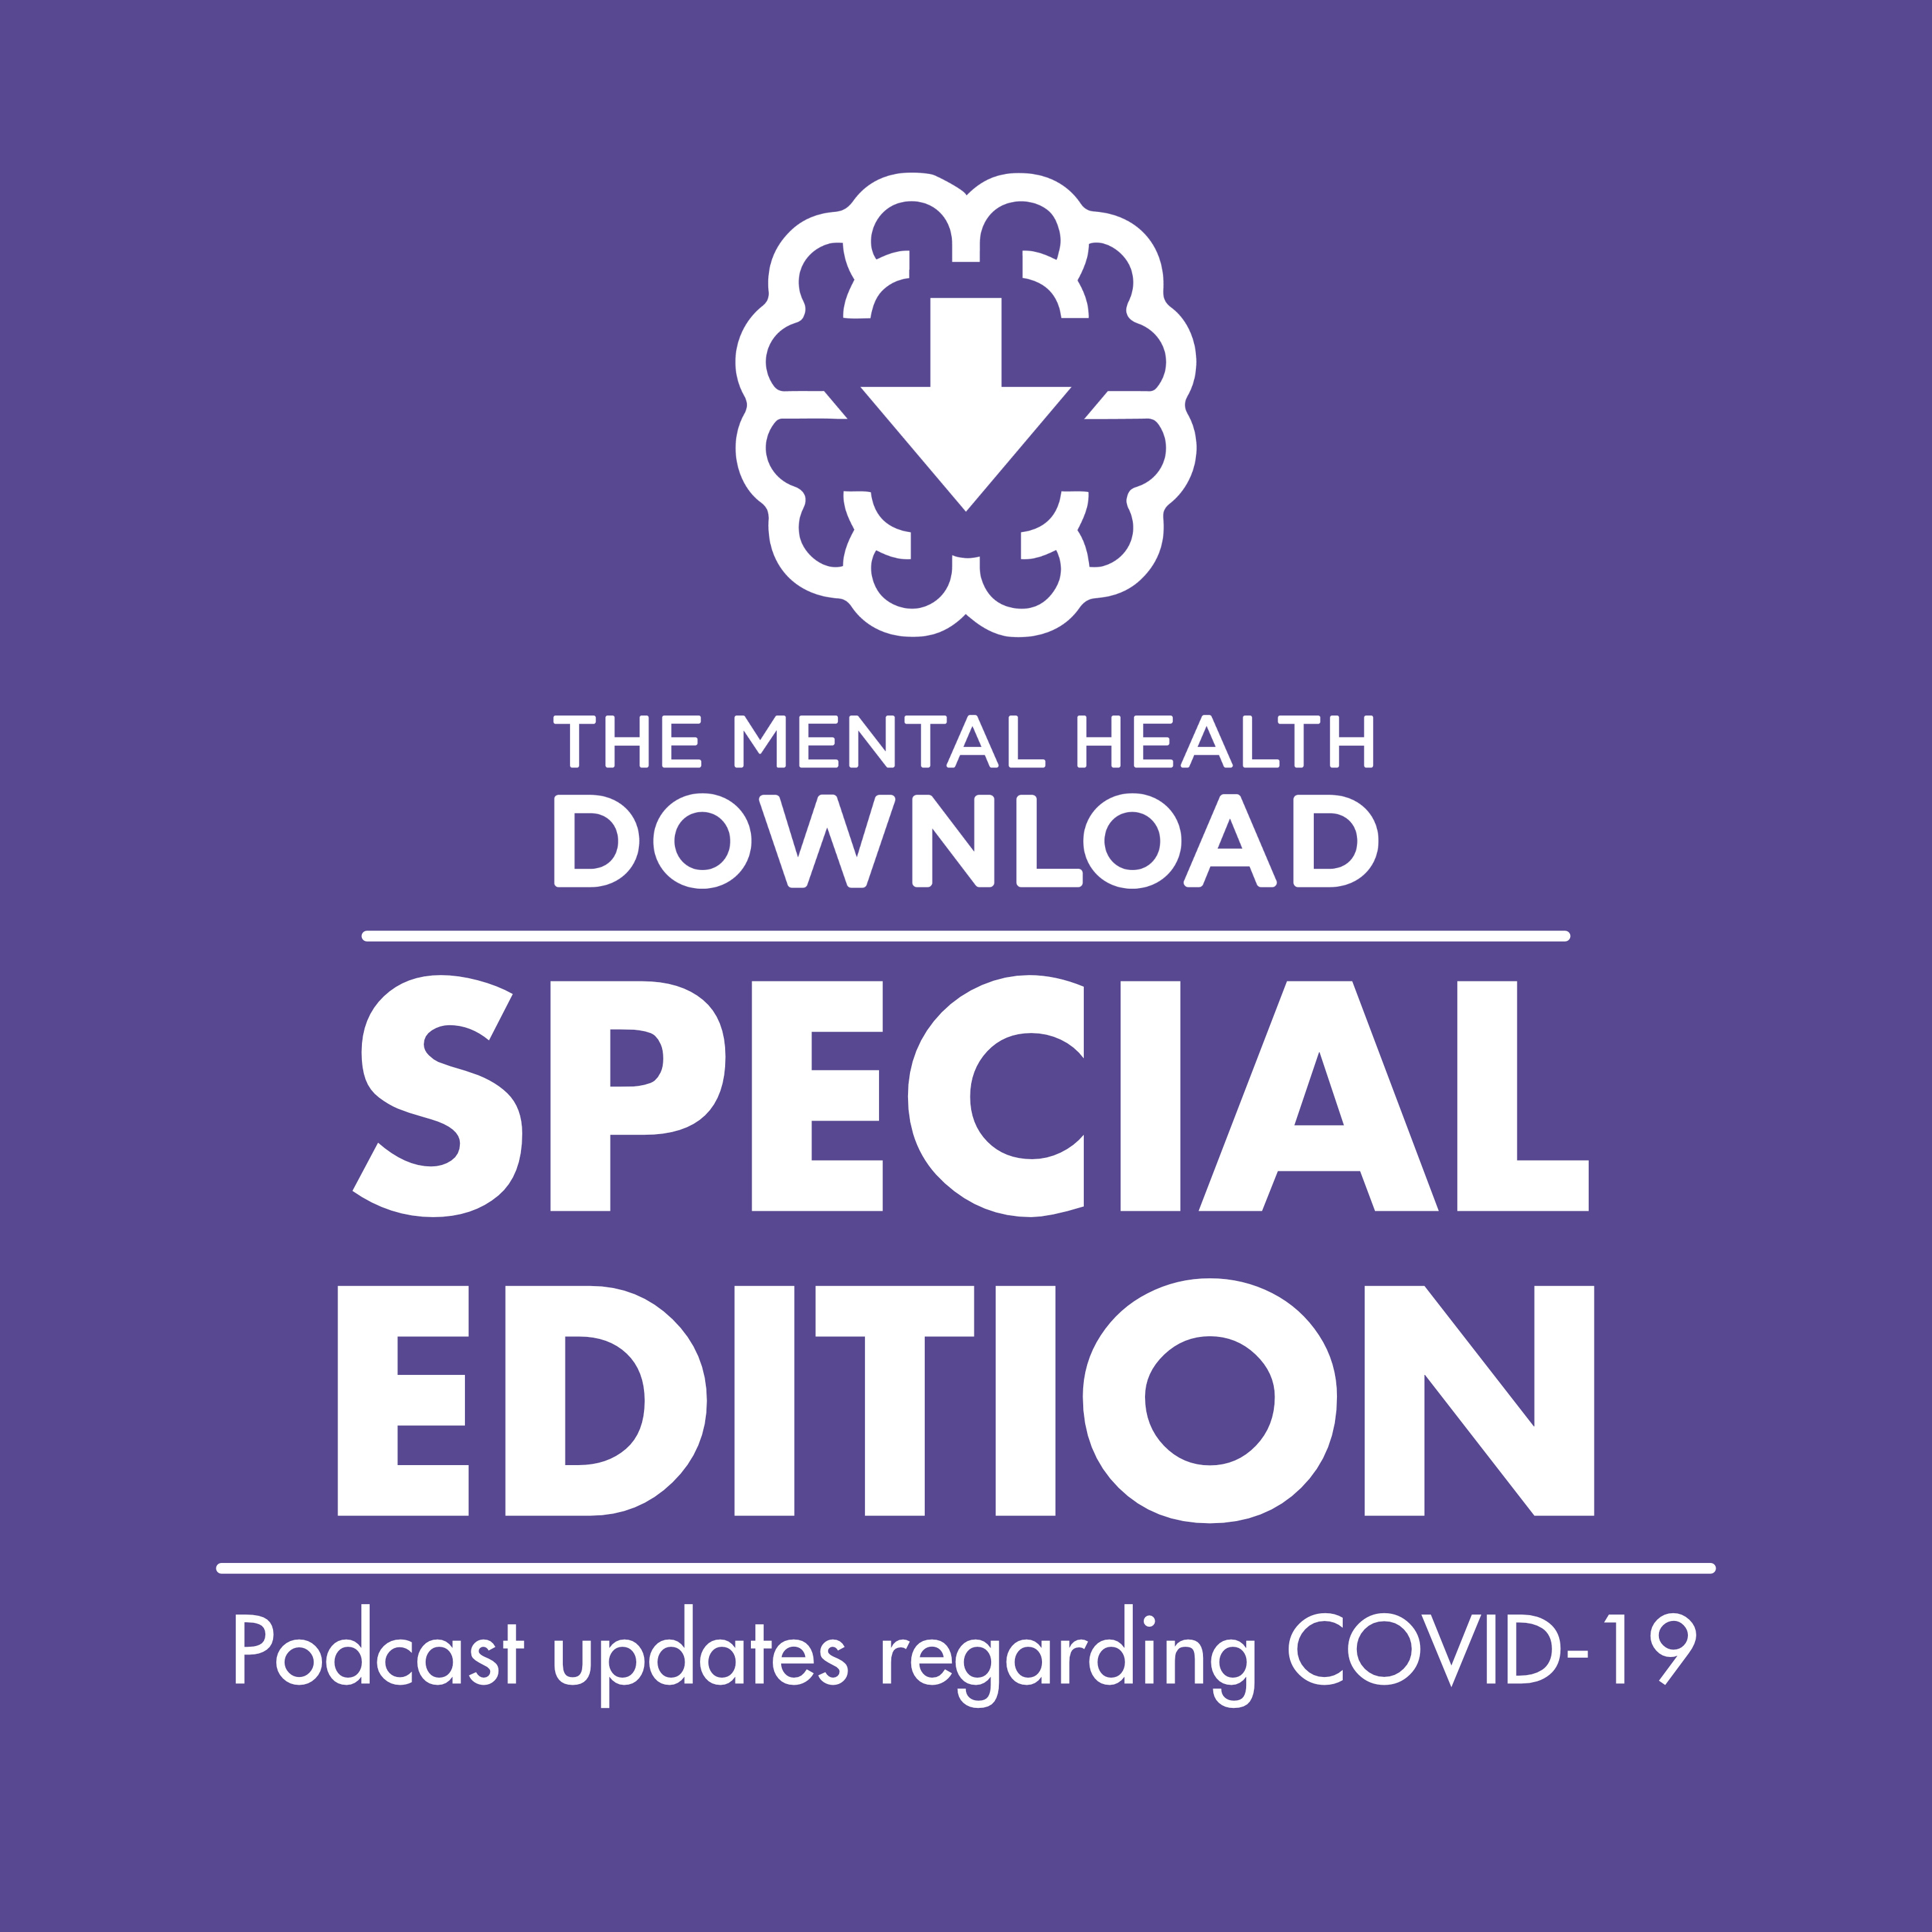 Mental Health Download: Exploring Mental Illness, Suicide, Homelessness and Incarceration - Covid-19 Series: Sarah Bacon on Anxiety, MDMA-Guided Therapy & Fleeing NYC